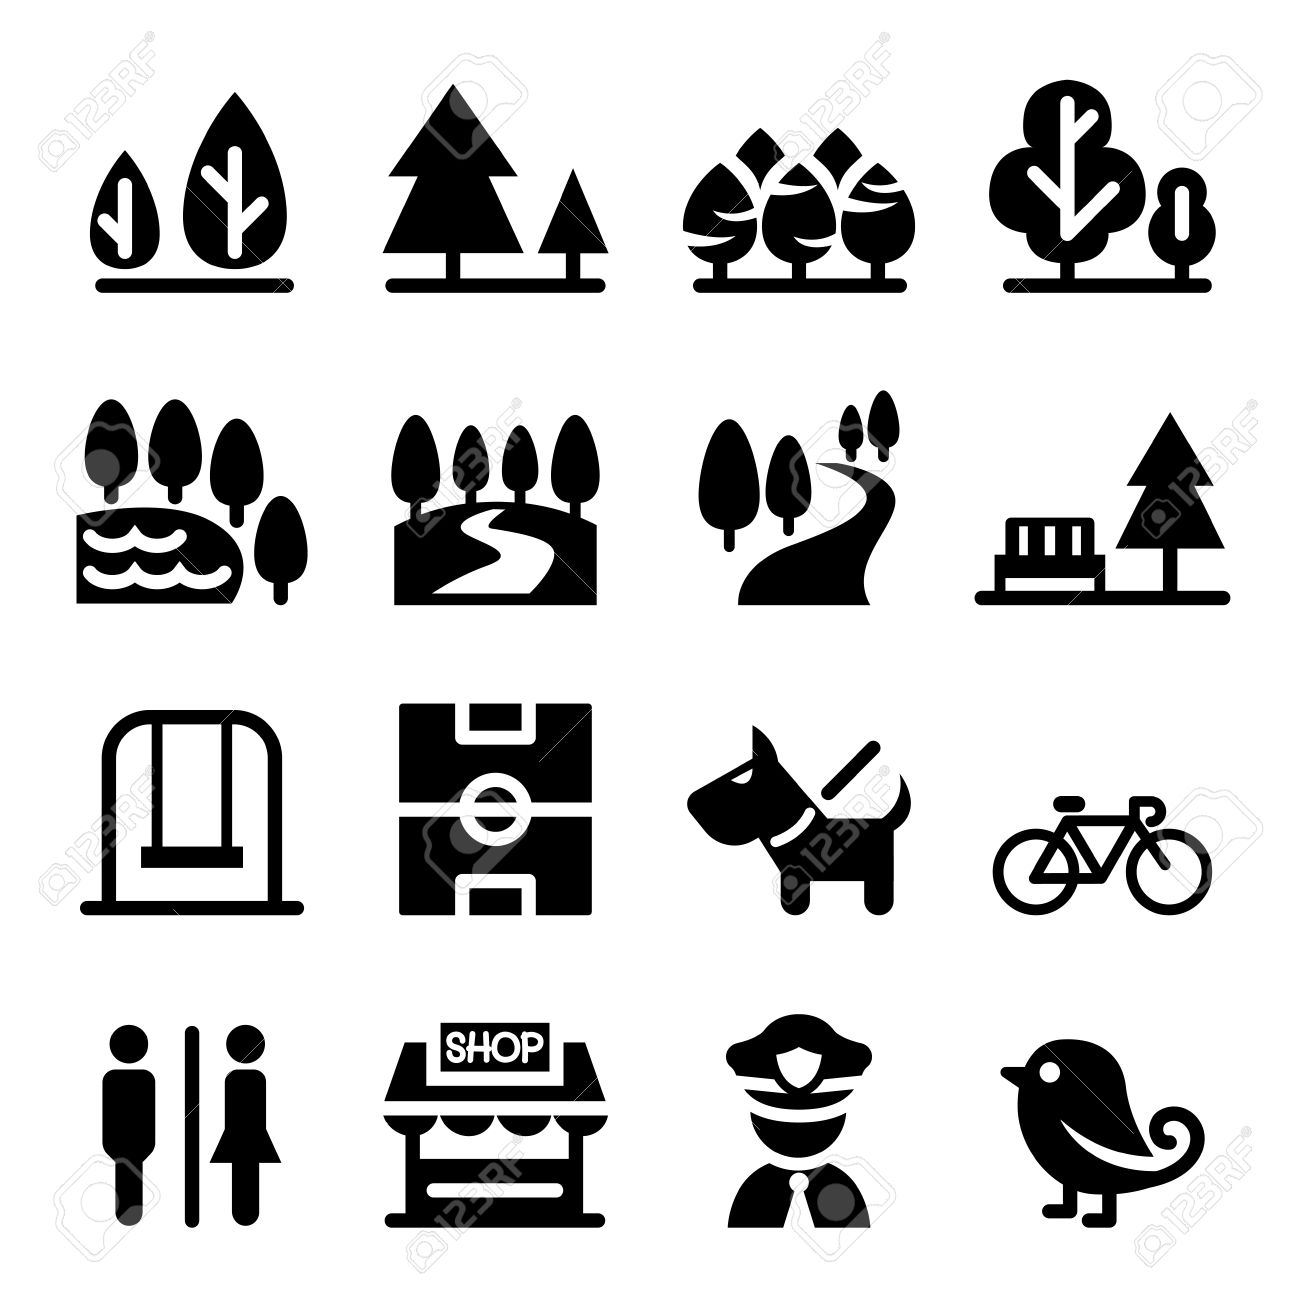 Park Public Park National Park Garden Icon Set Royalty Free